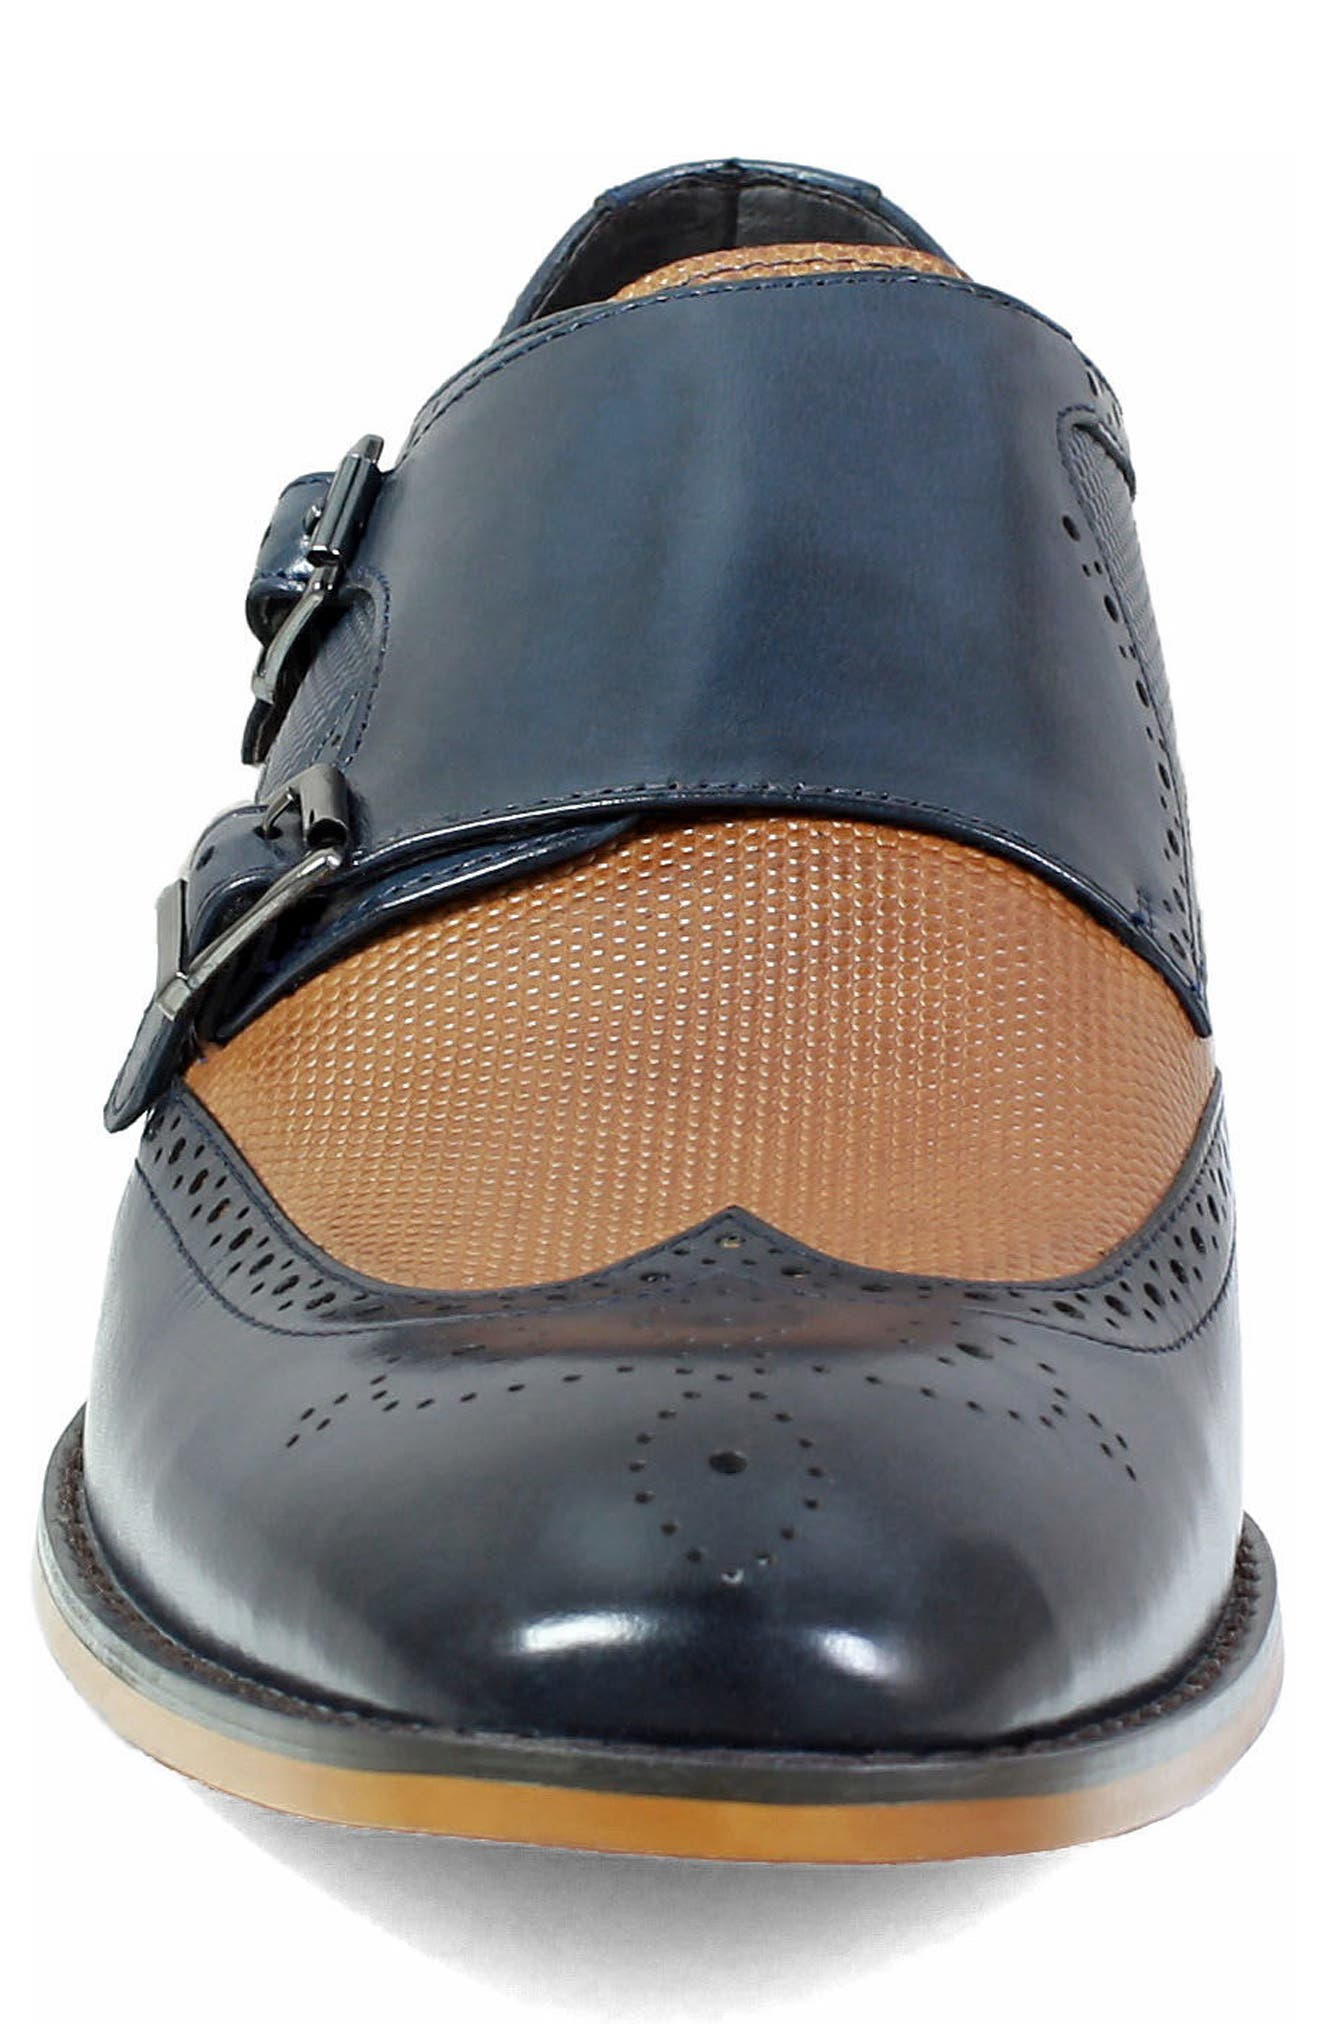 STACY ADAMS, Lavine Wingtip Monk Shoe, Alternate thumbnail 4, color, NAVY AND SADDLE TAN LEATHER